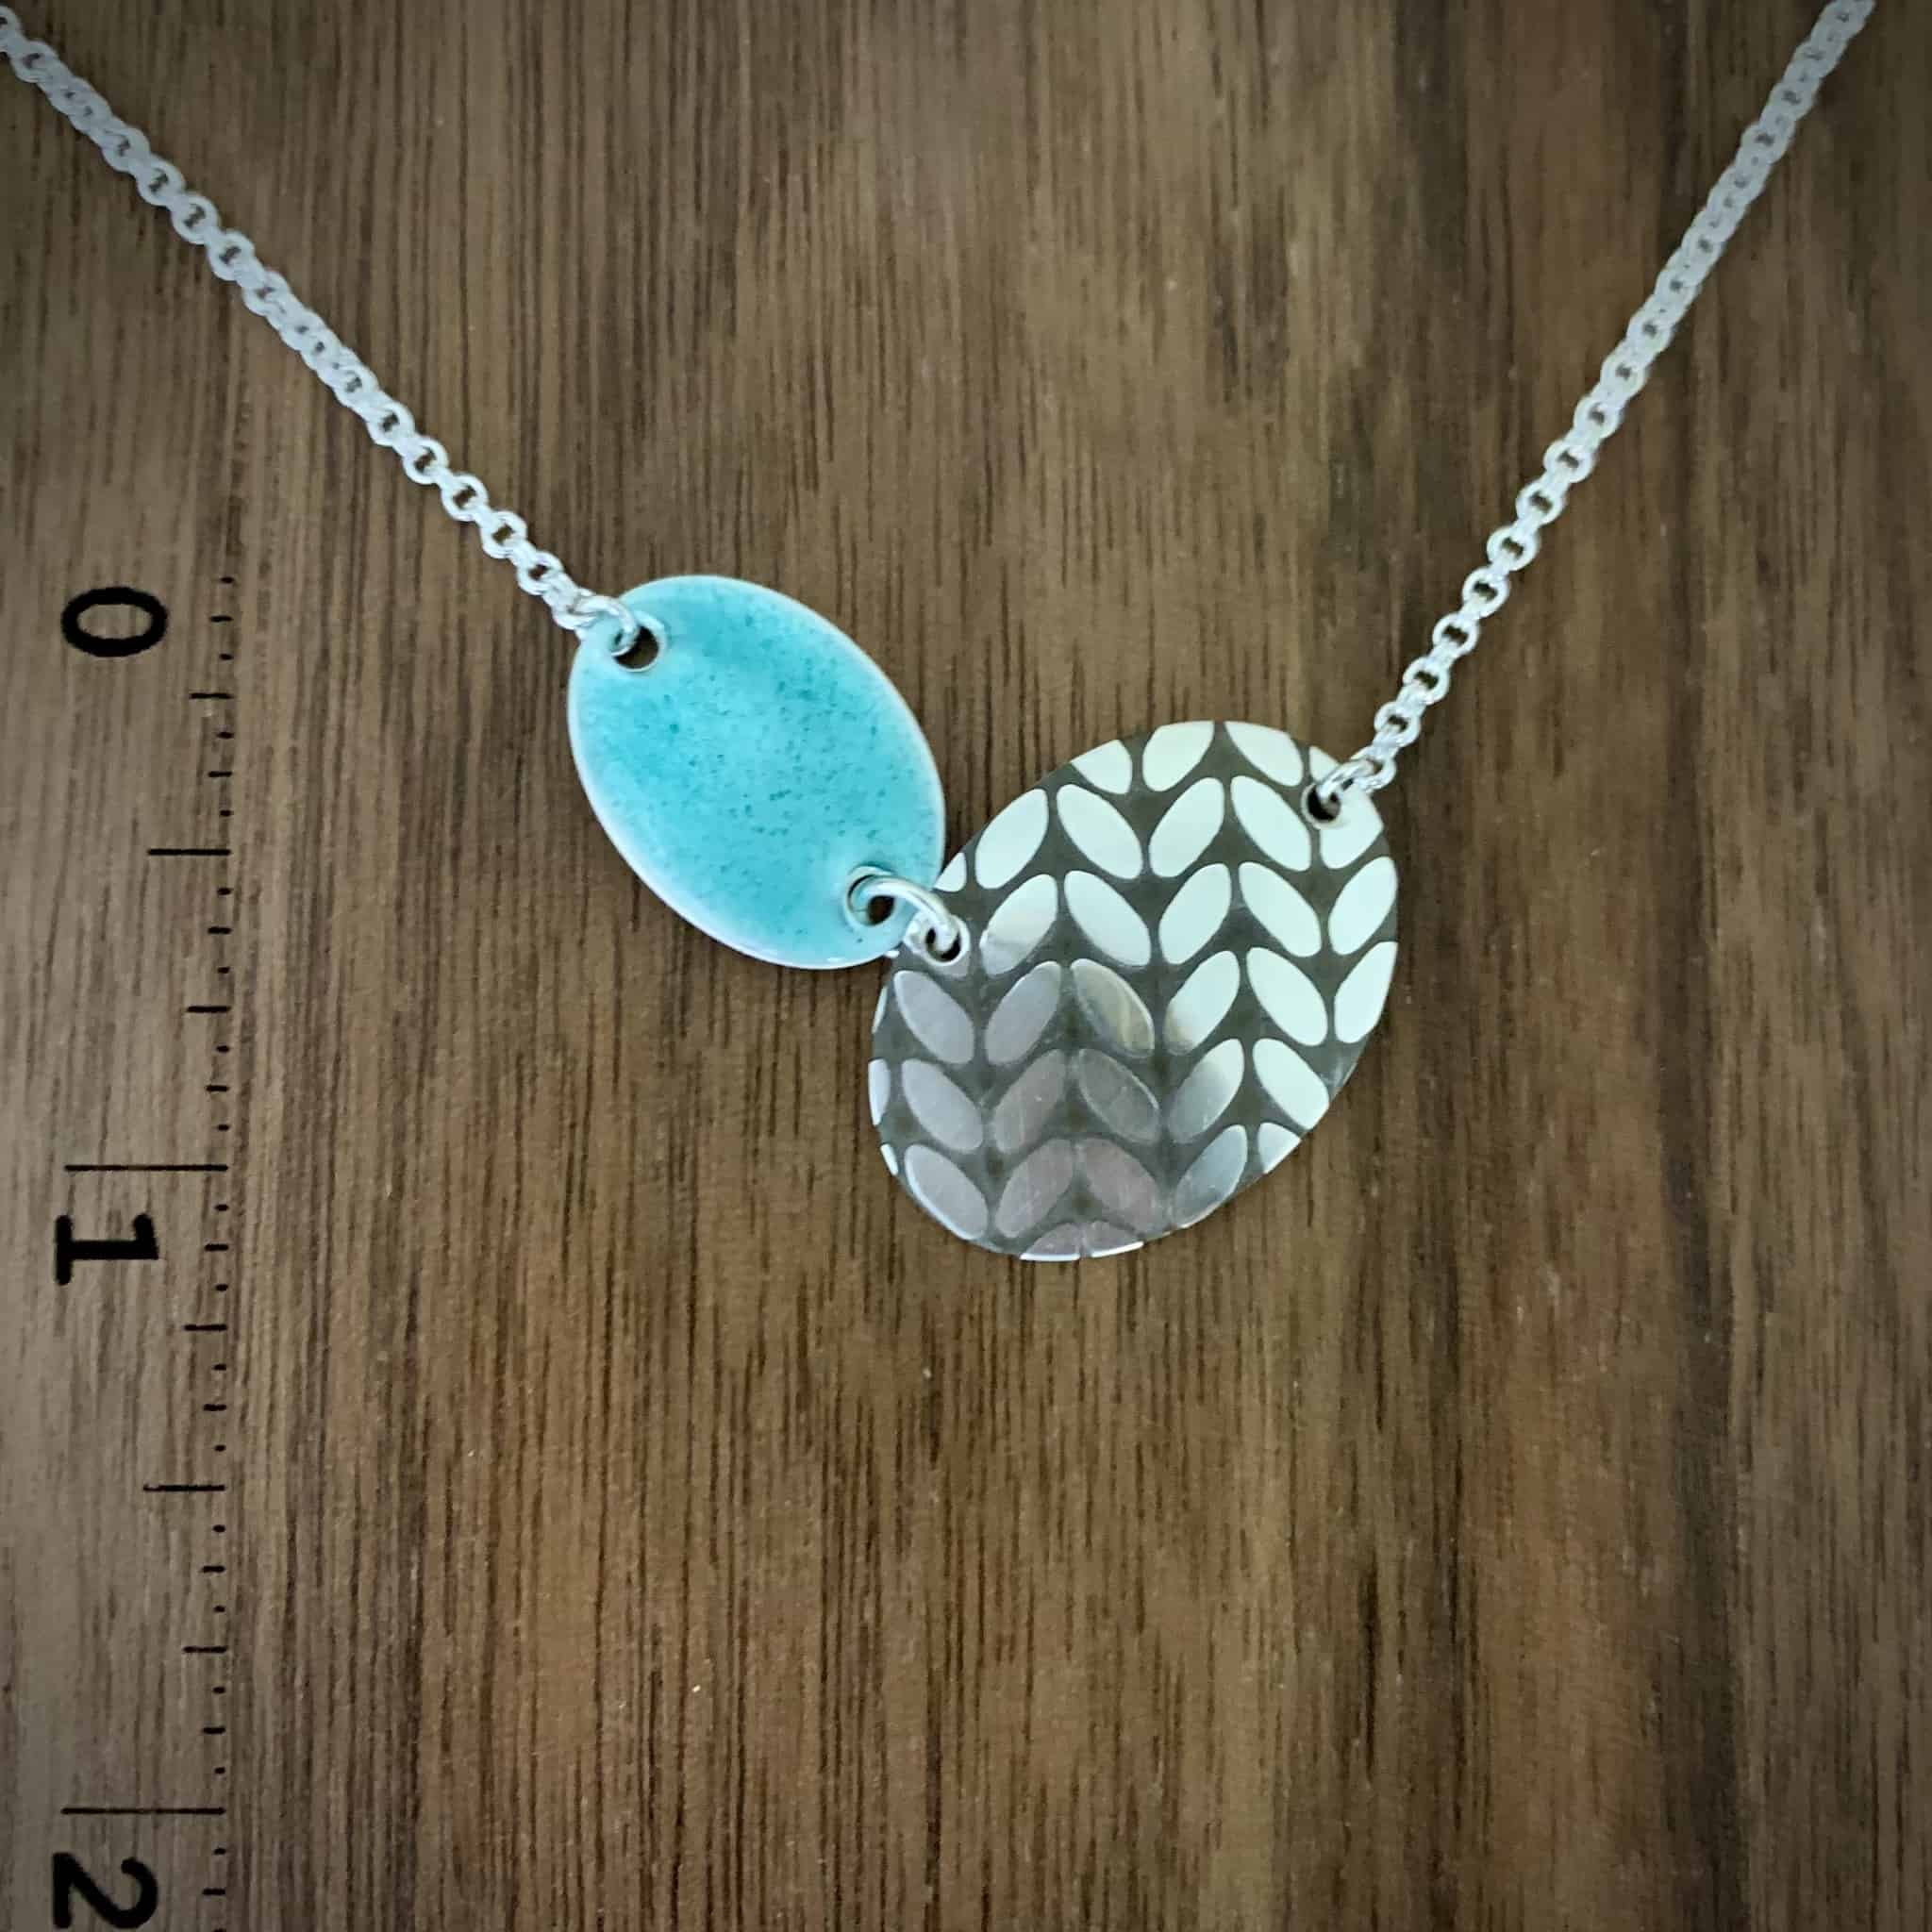 A necklance with a silver stickinette stitch pattern and an aqua enamel oval.